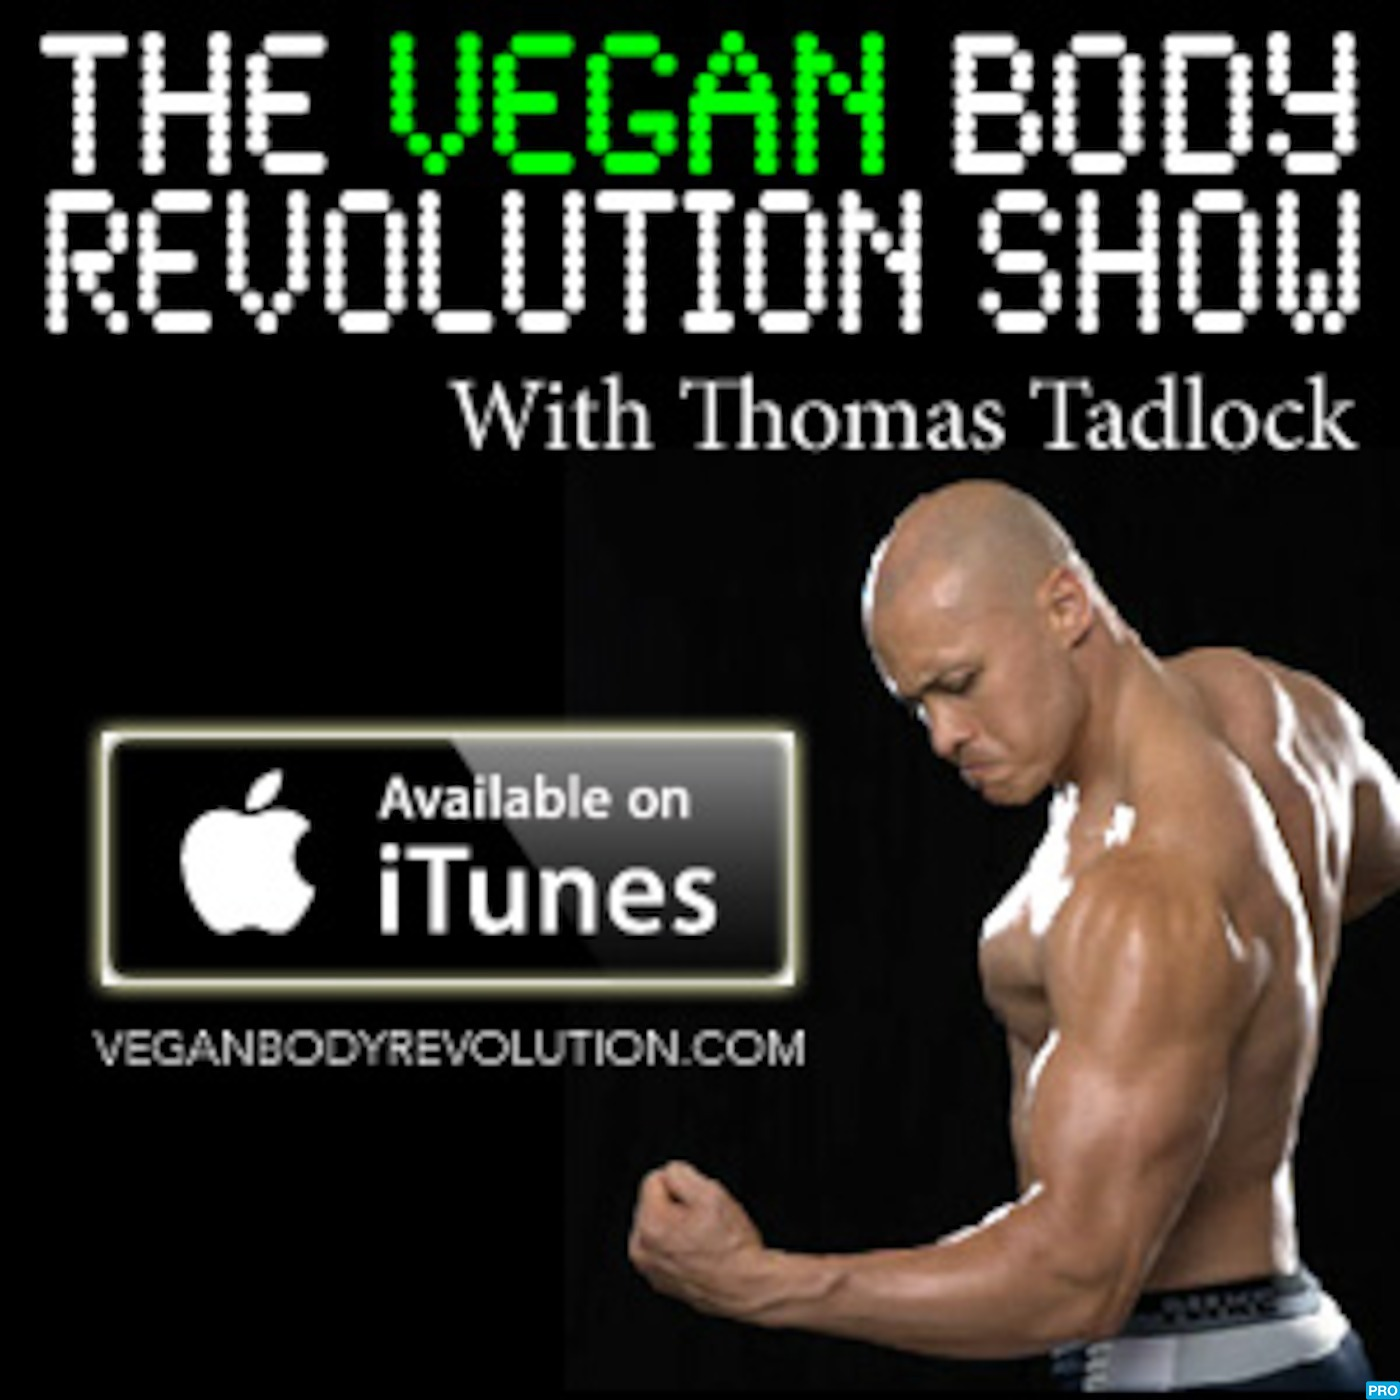 The Vegan Body Revolution Show